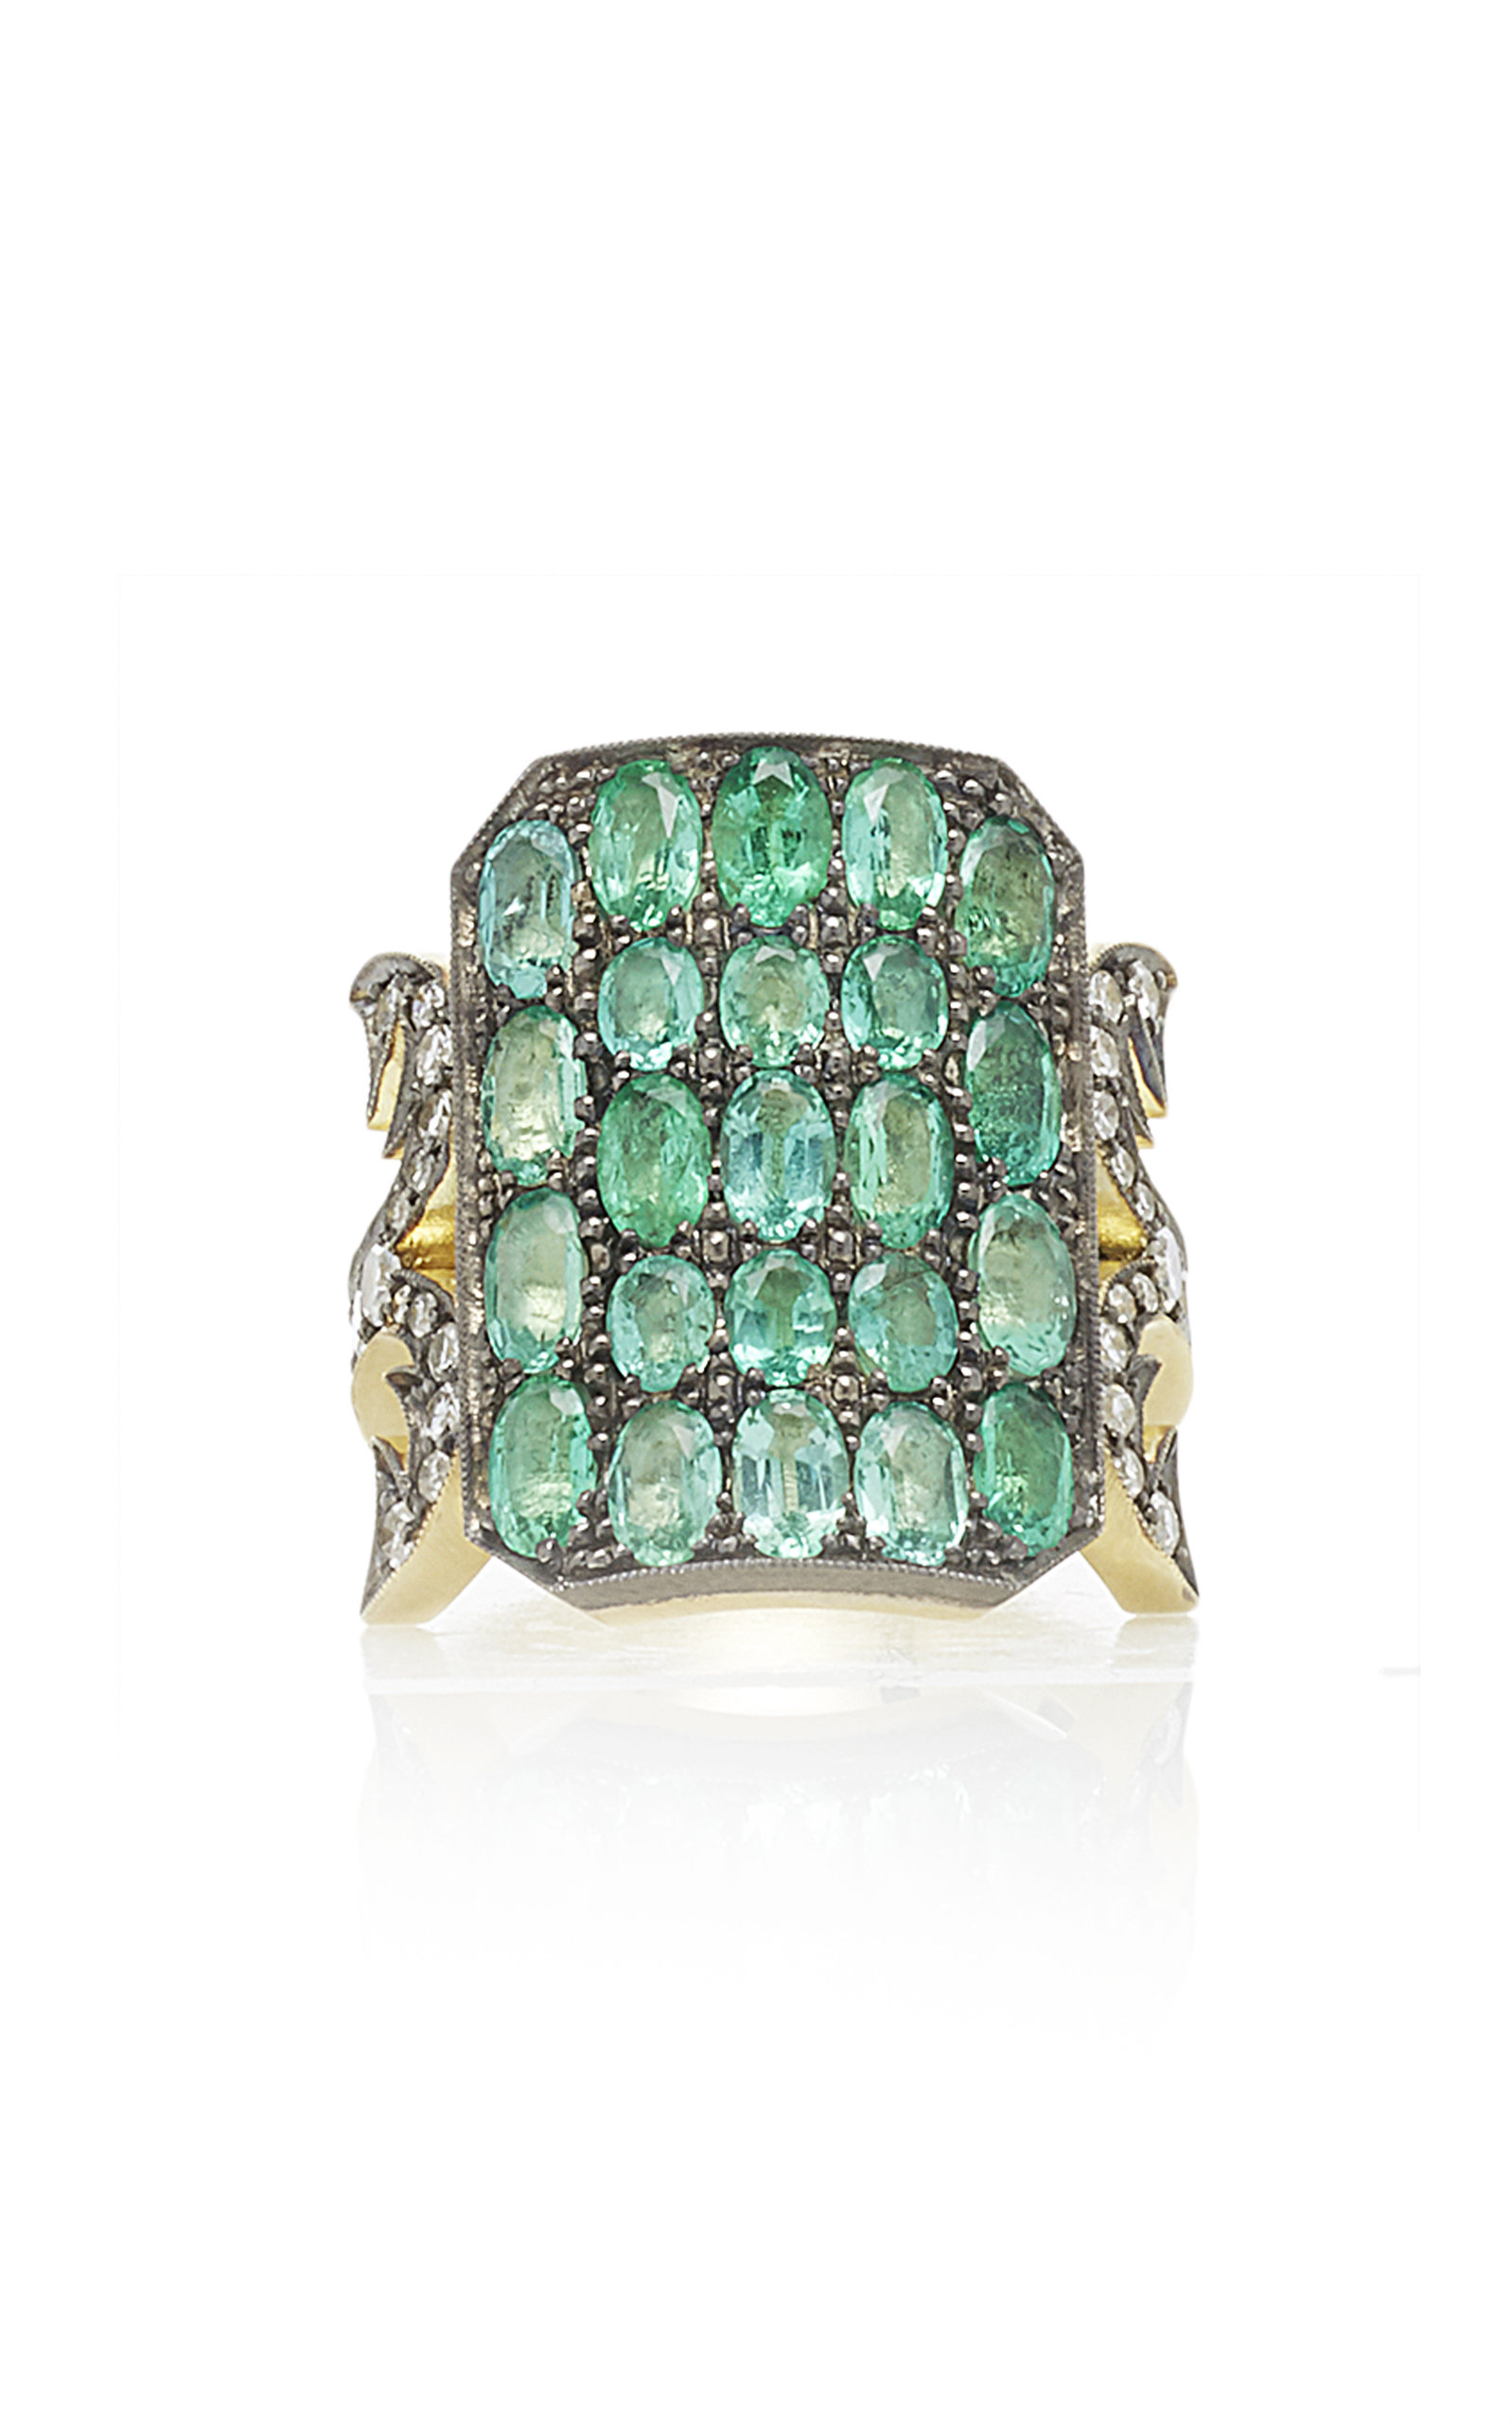 EMERALD TEN TABLE RING